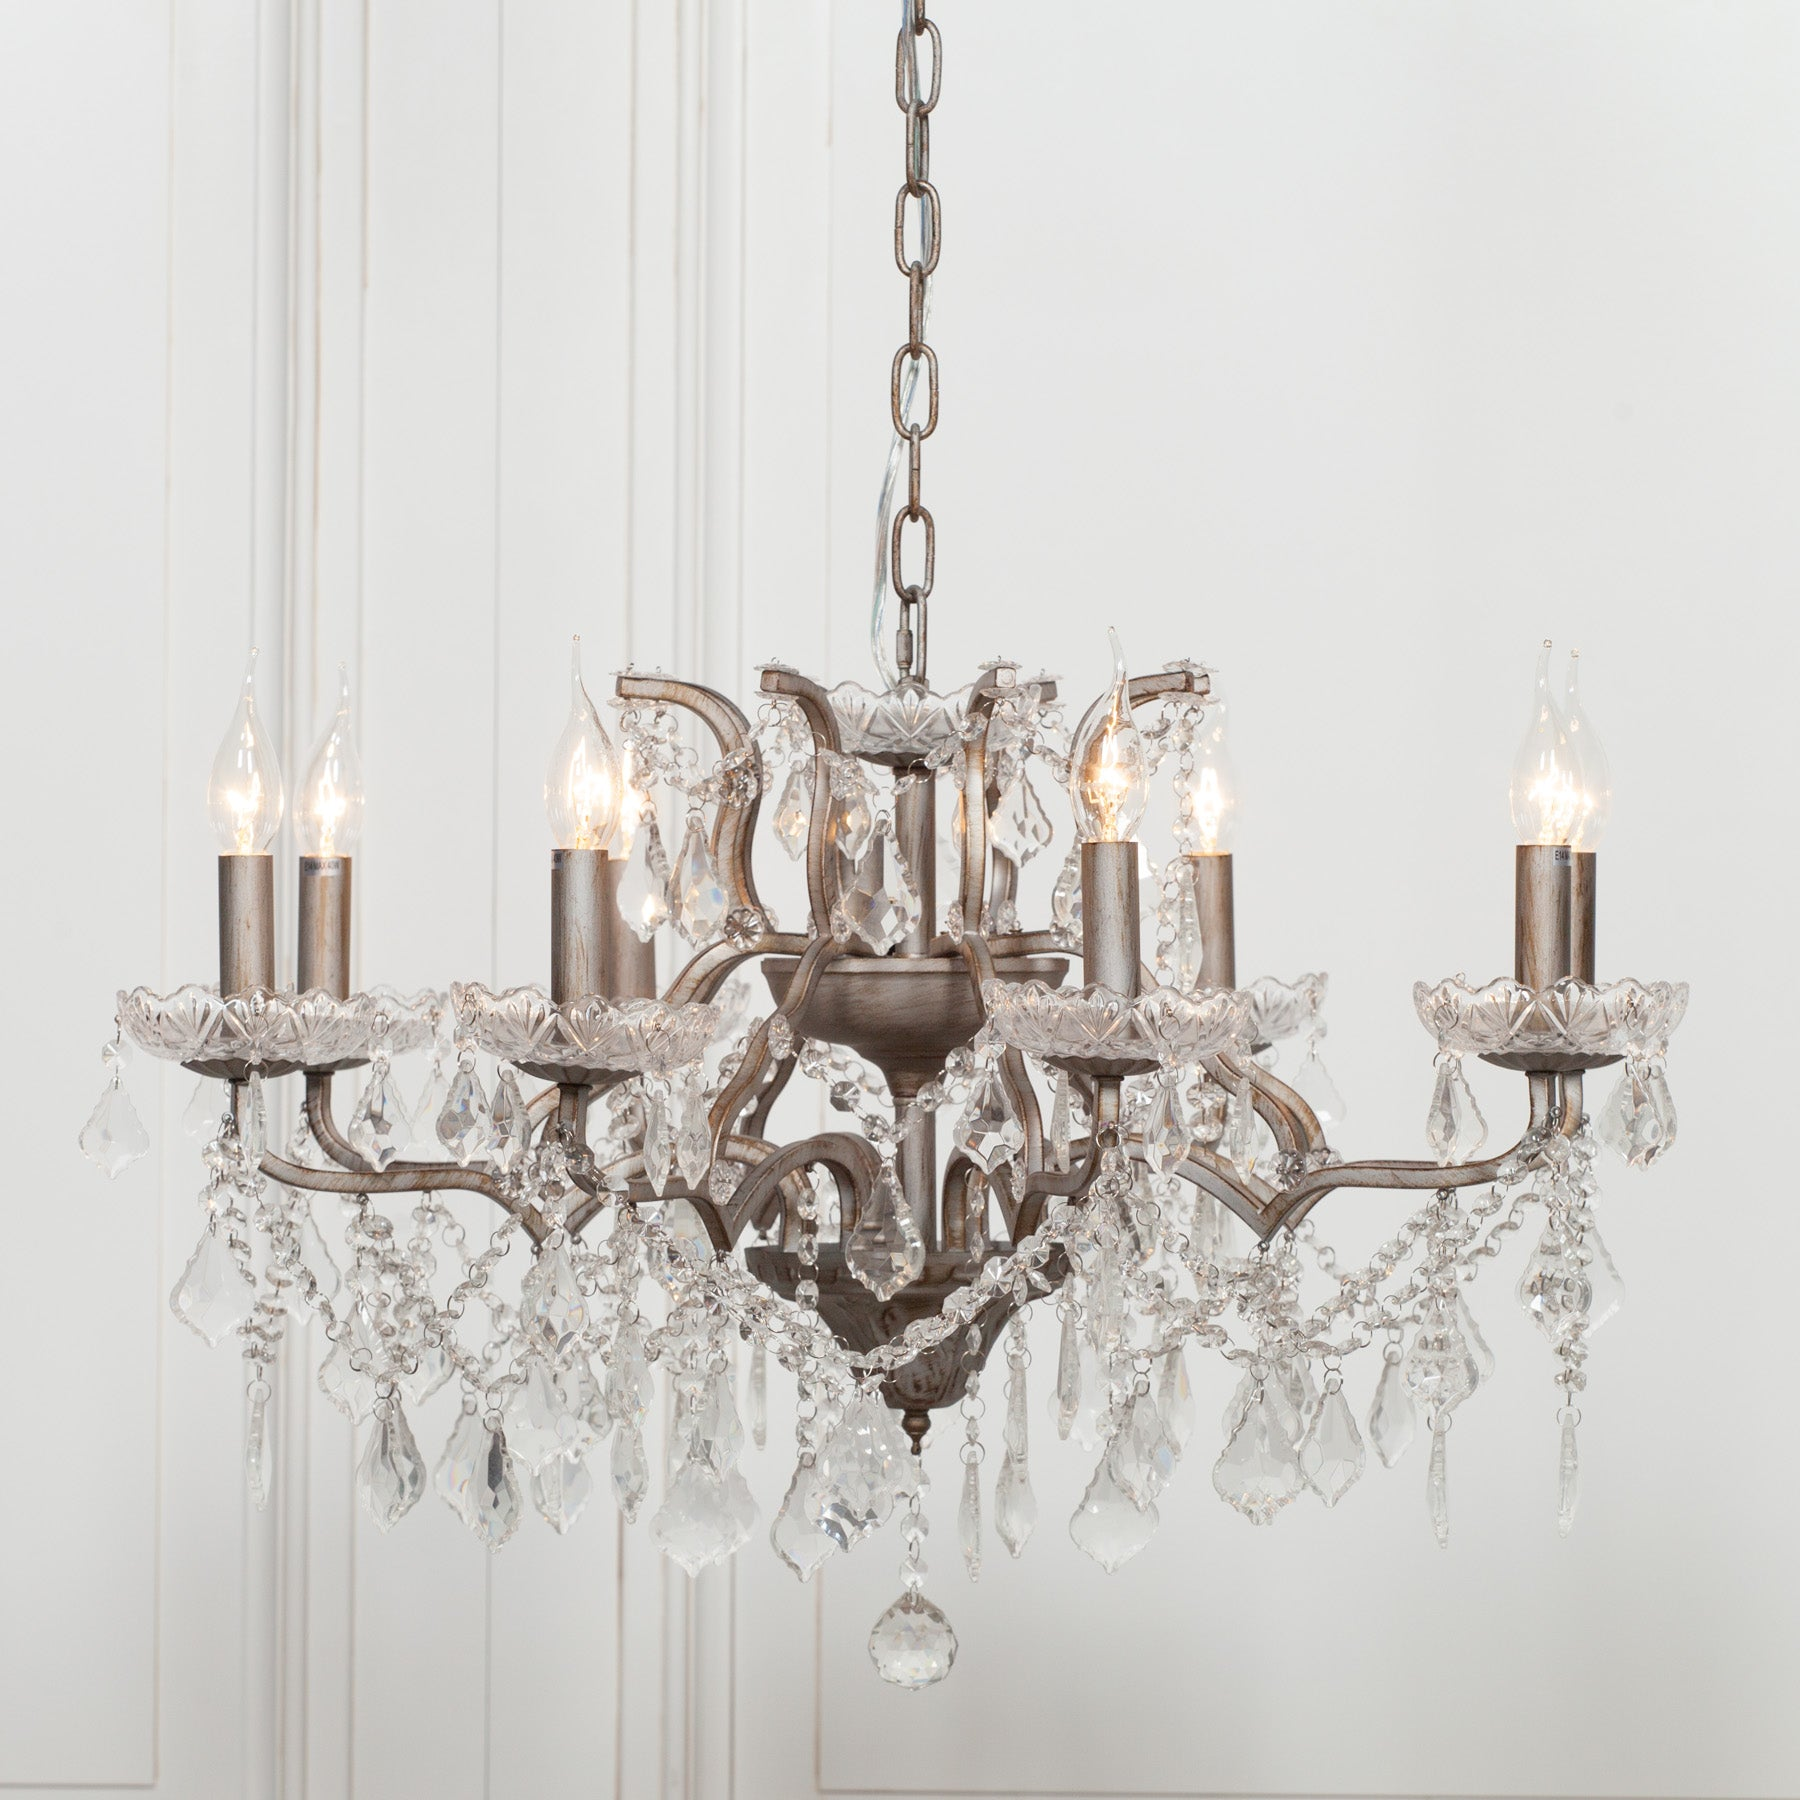 Silver 8 Branch Shallow Cut Glass Chandelier